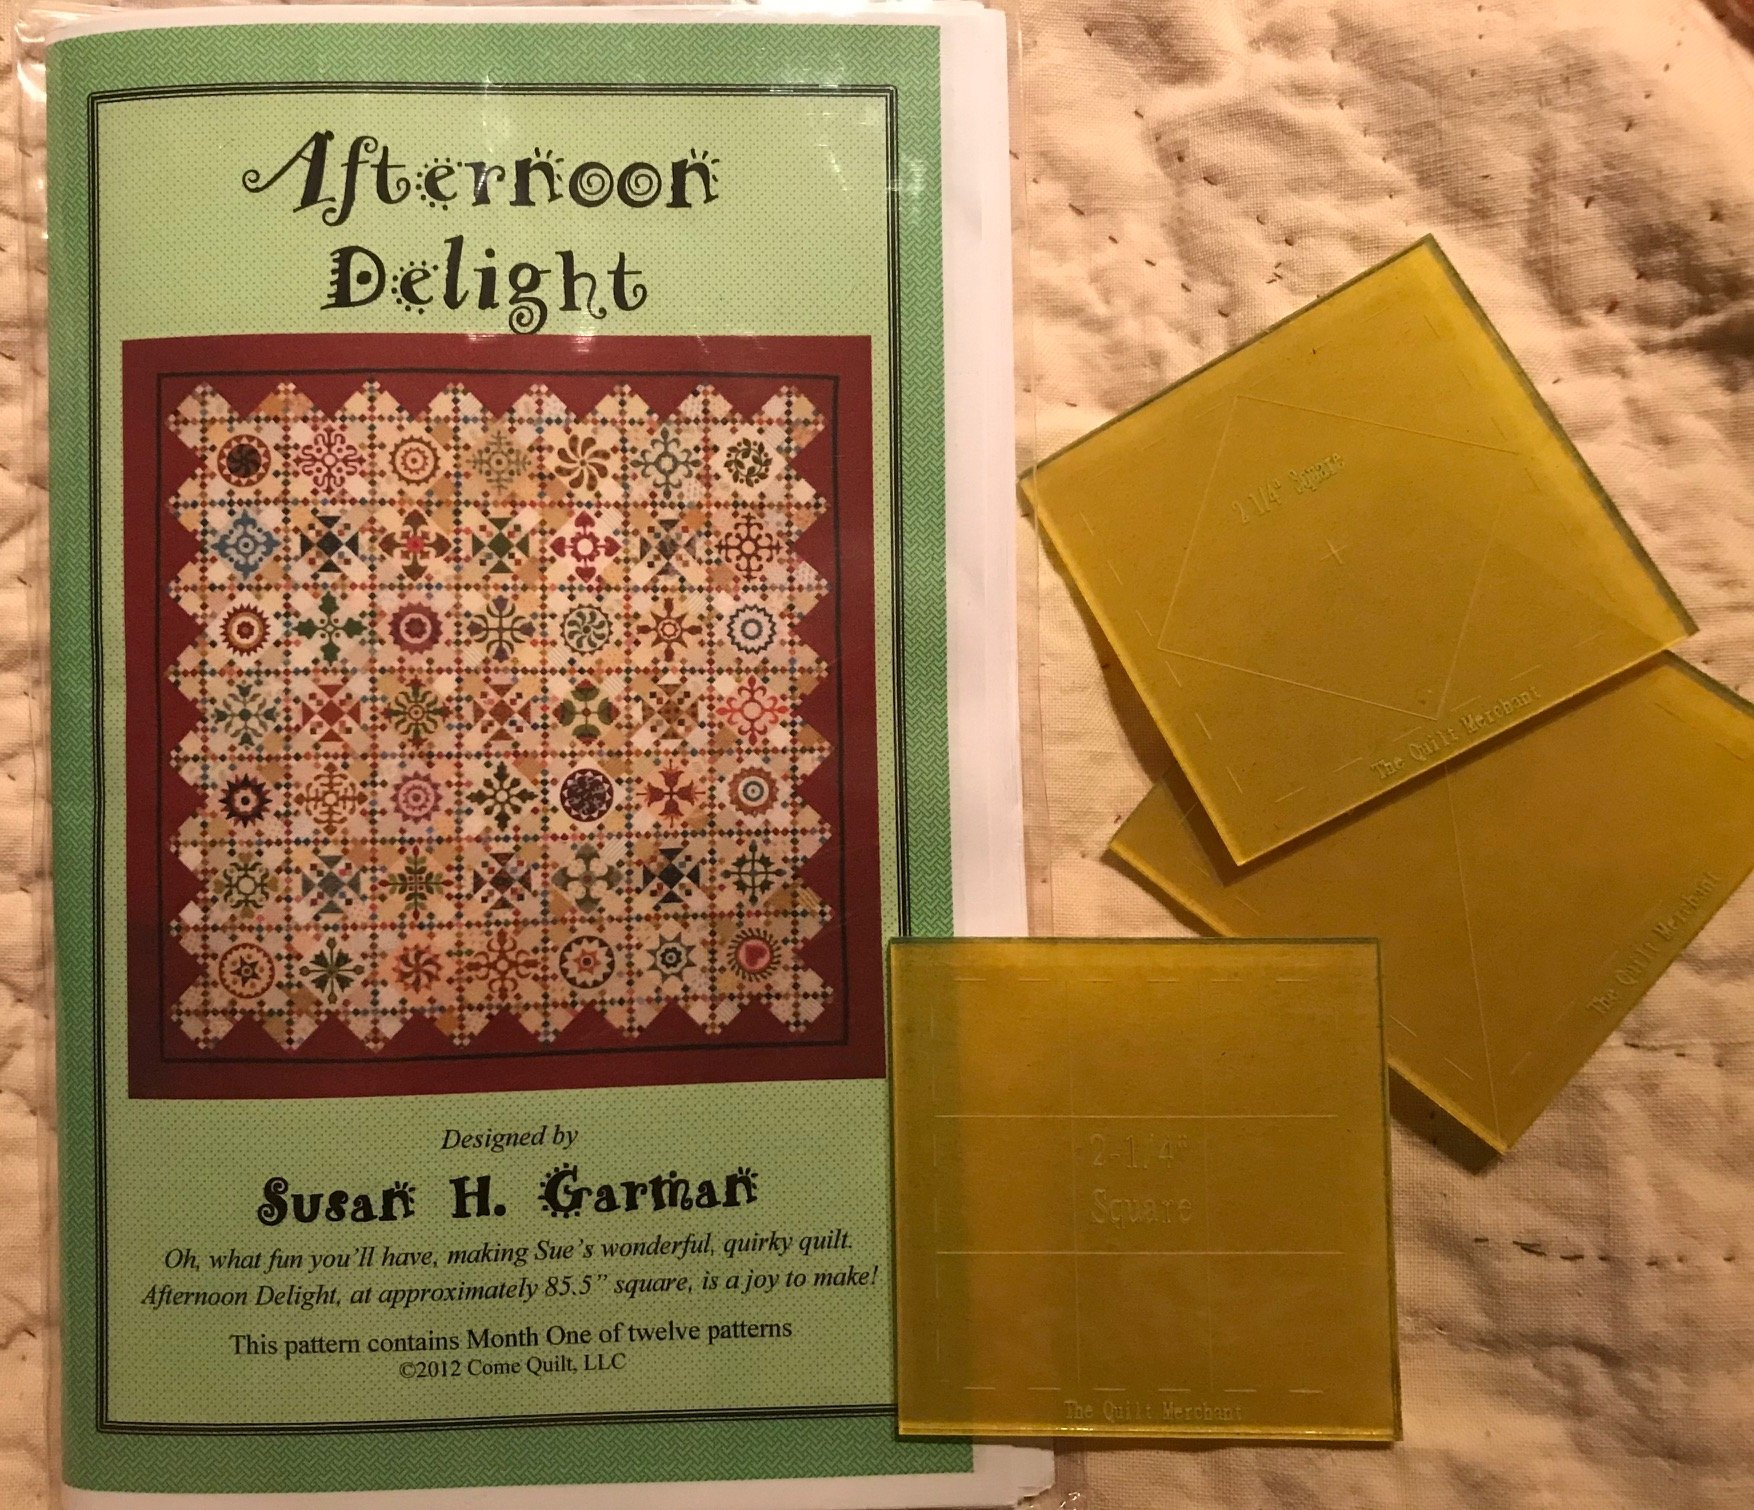 Template set for Afternoon Delight quilt